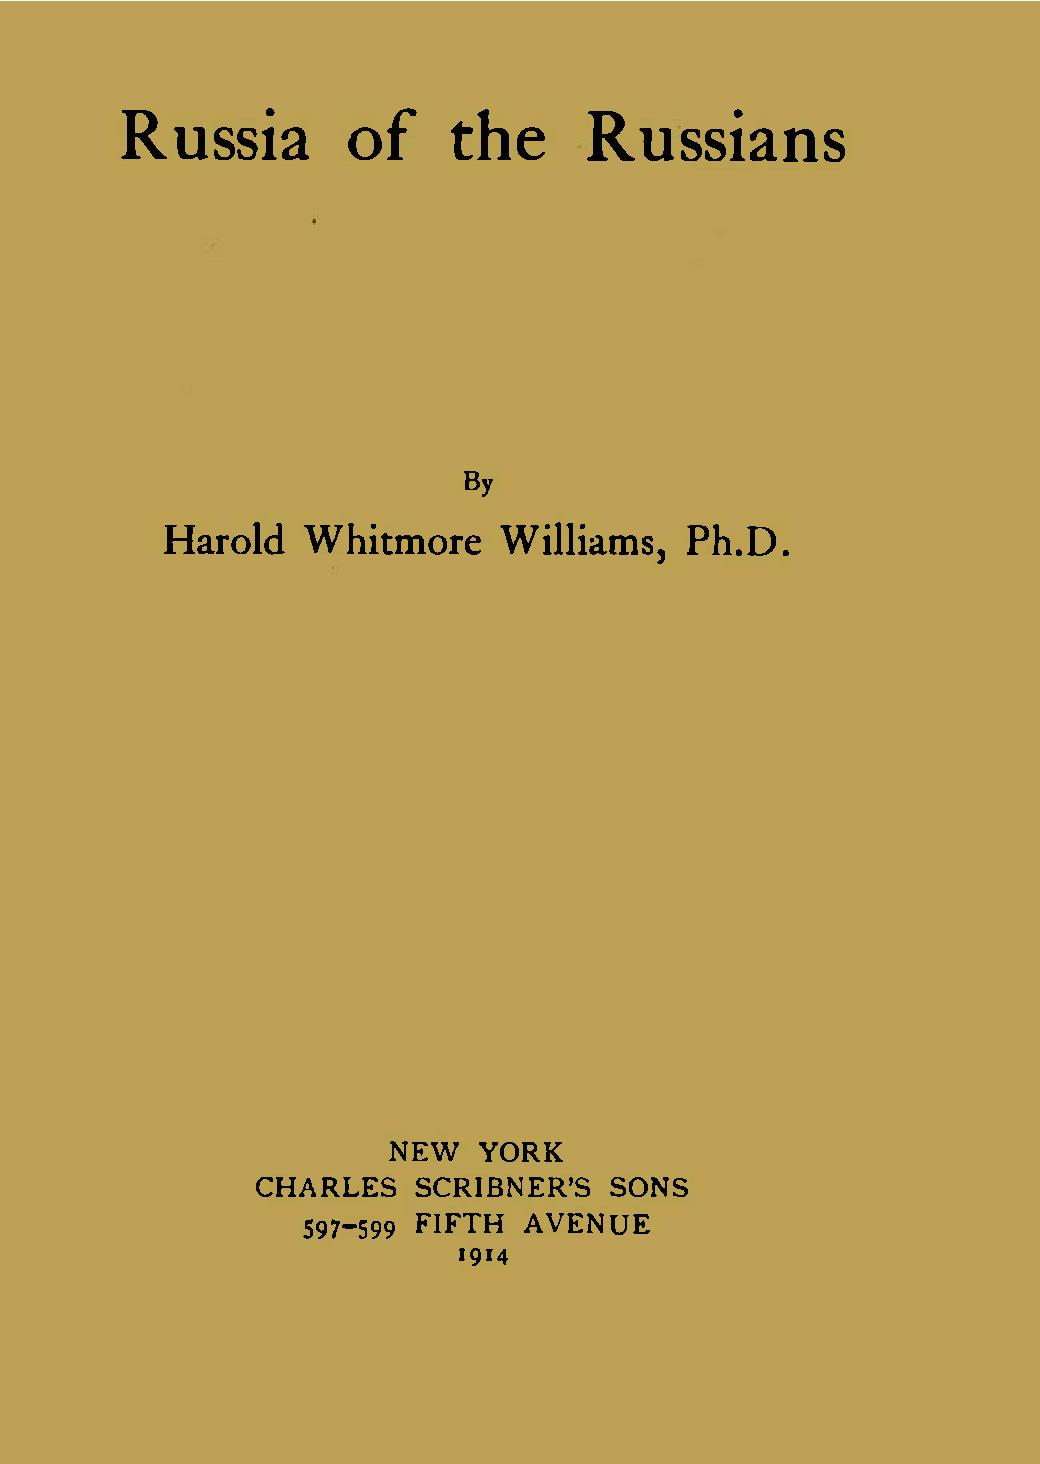 Russia Of The Russians By Harold Whitmore Williams